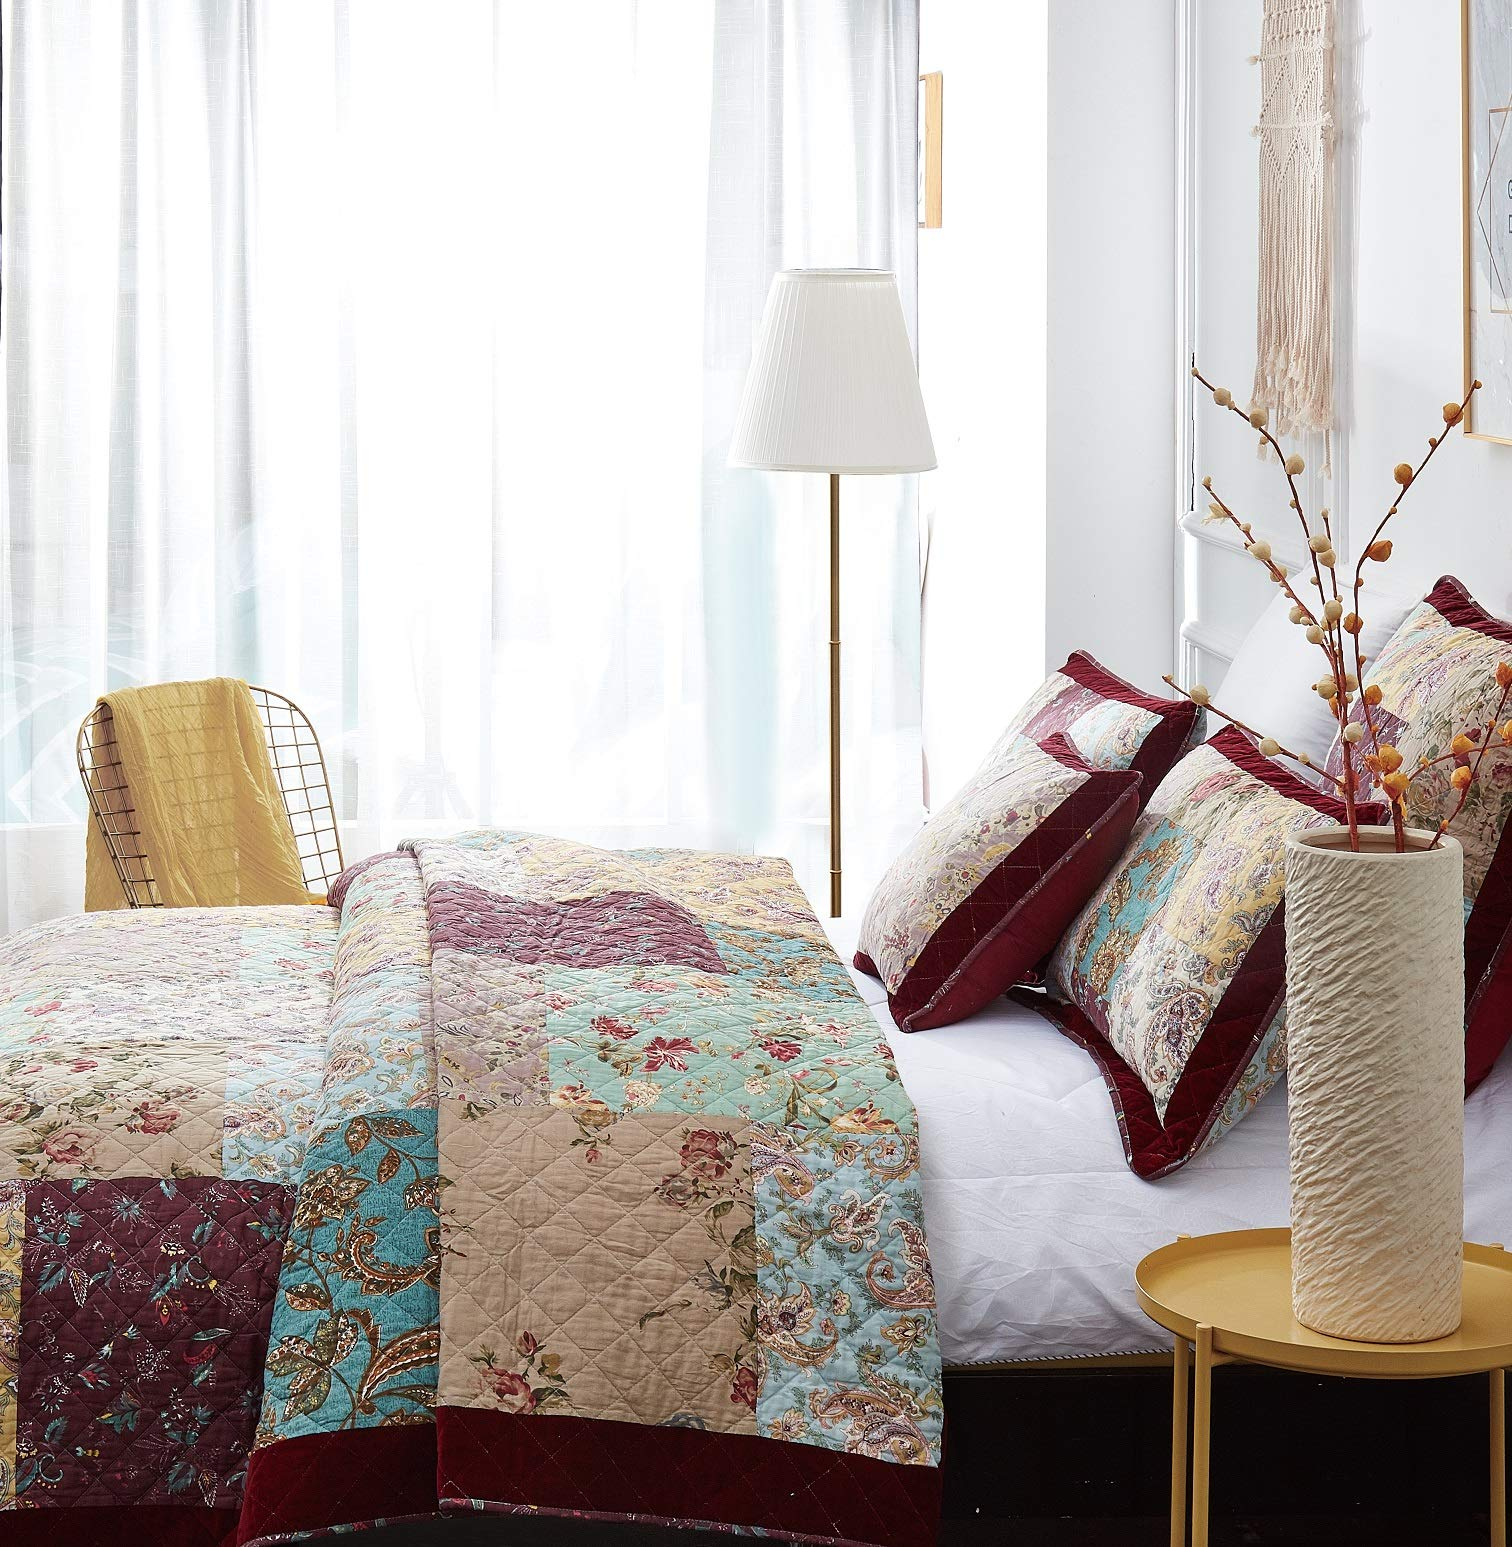 DaDa Bedding Bohemian Patchwork Bedspread - Burgundy Wine Velvety Trim - Vintage Floral Roses Paisley - Bright Vibrant Multi-Colorful Quilted Set - Queen - 3-Pieces by DaDa Bedding Collection (Image #3)